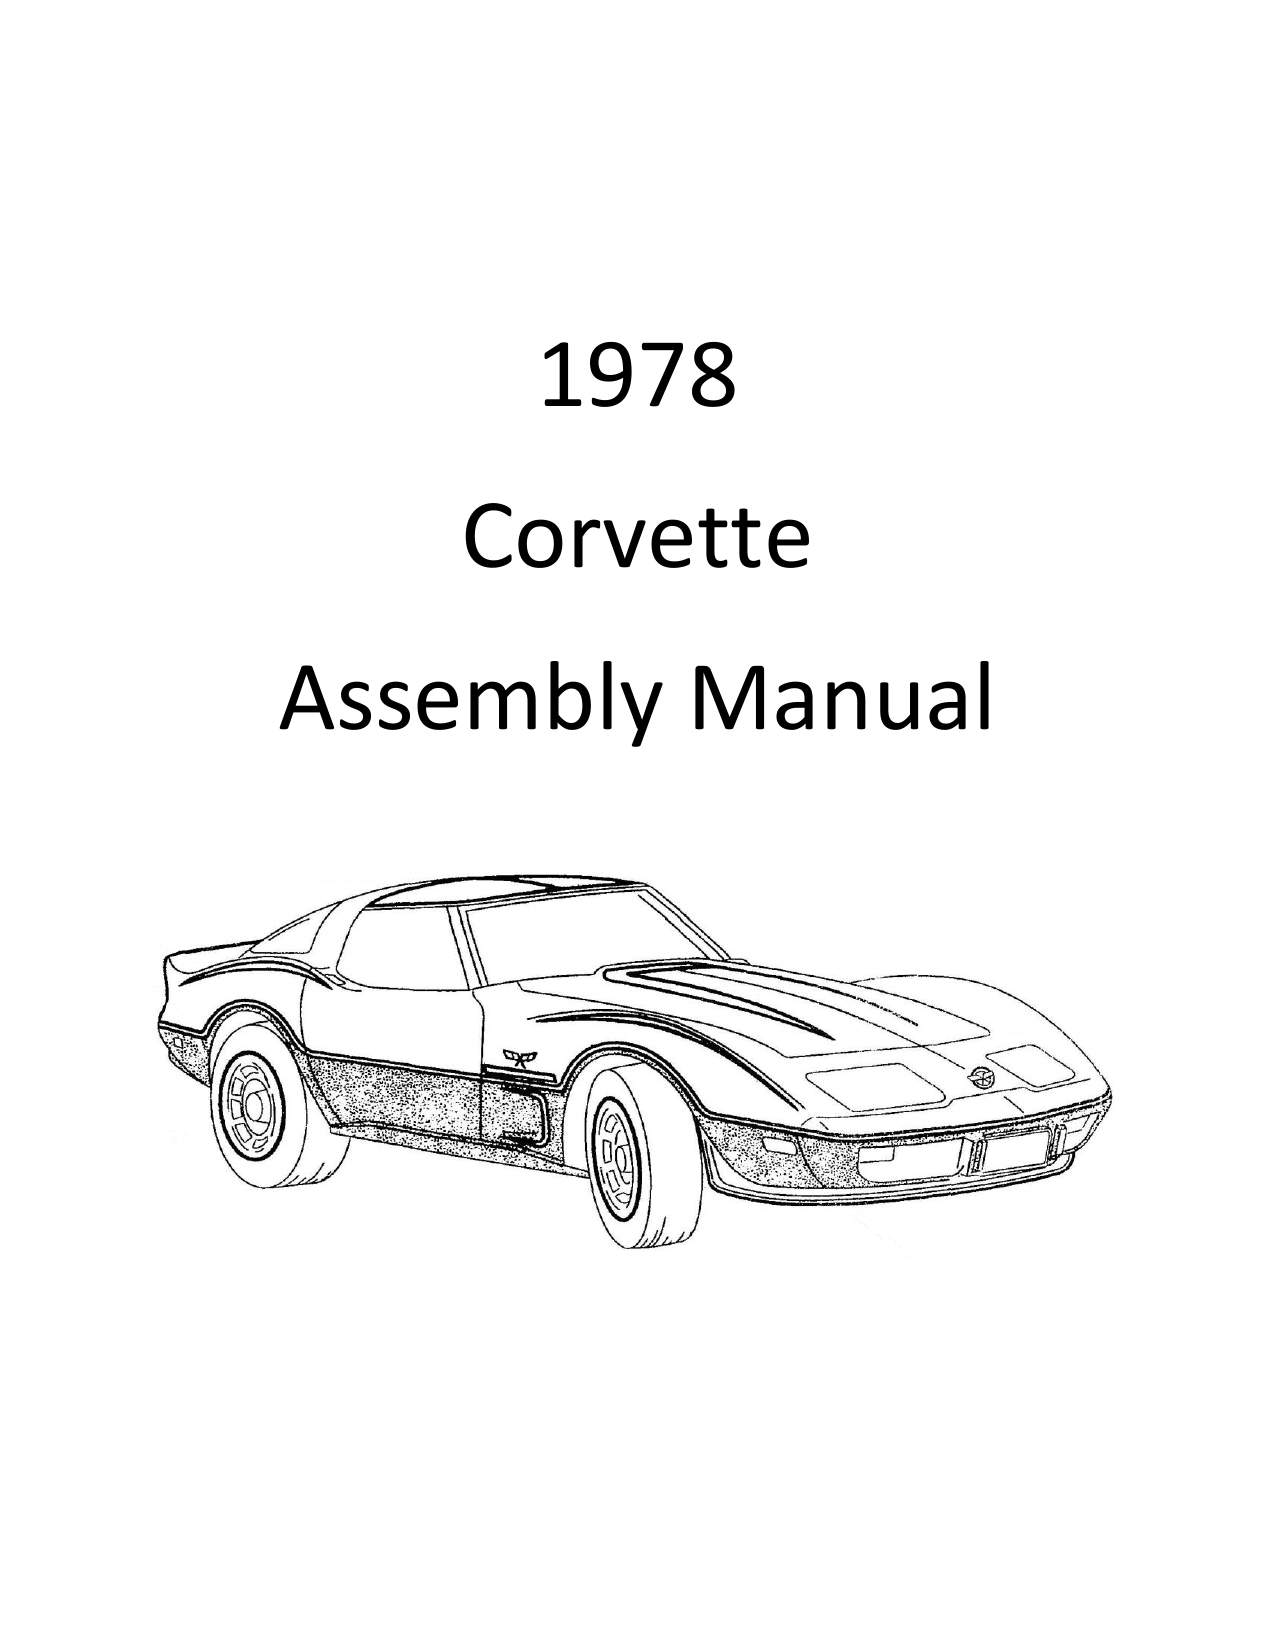 Corvette Assembly Manual January 1978